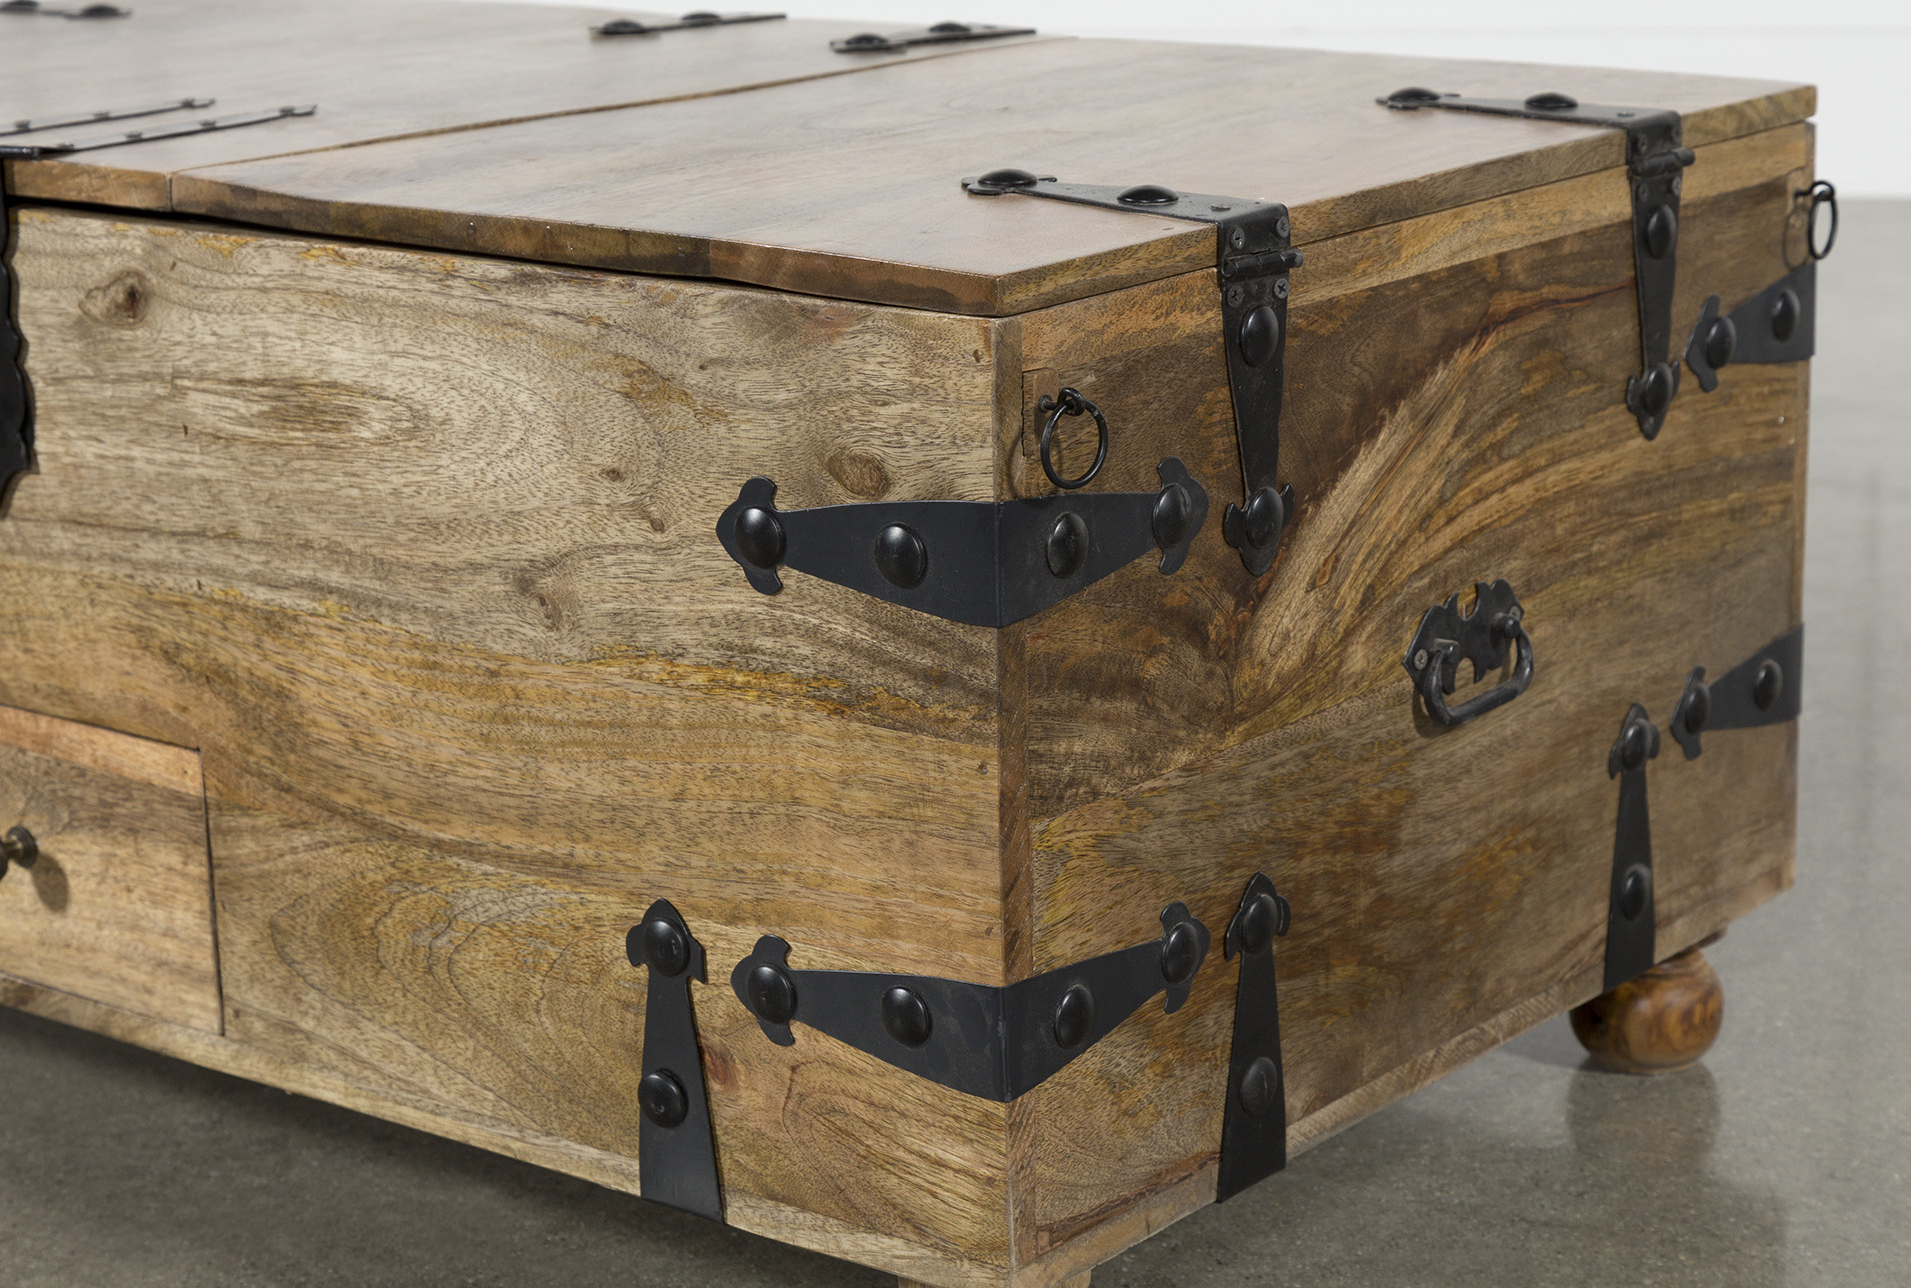 Rectangular Barbox Coffee Tables Throughout Fashionable Rectangular Barbox Coffee Table (Gallery 1 of 20)